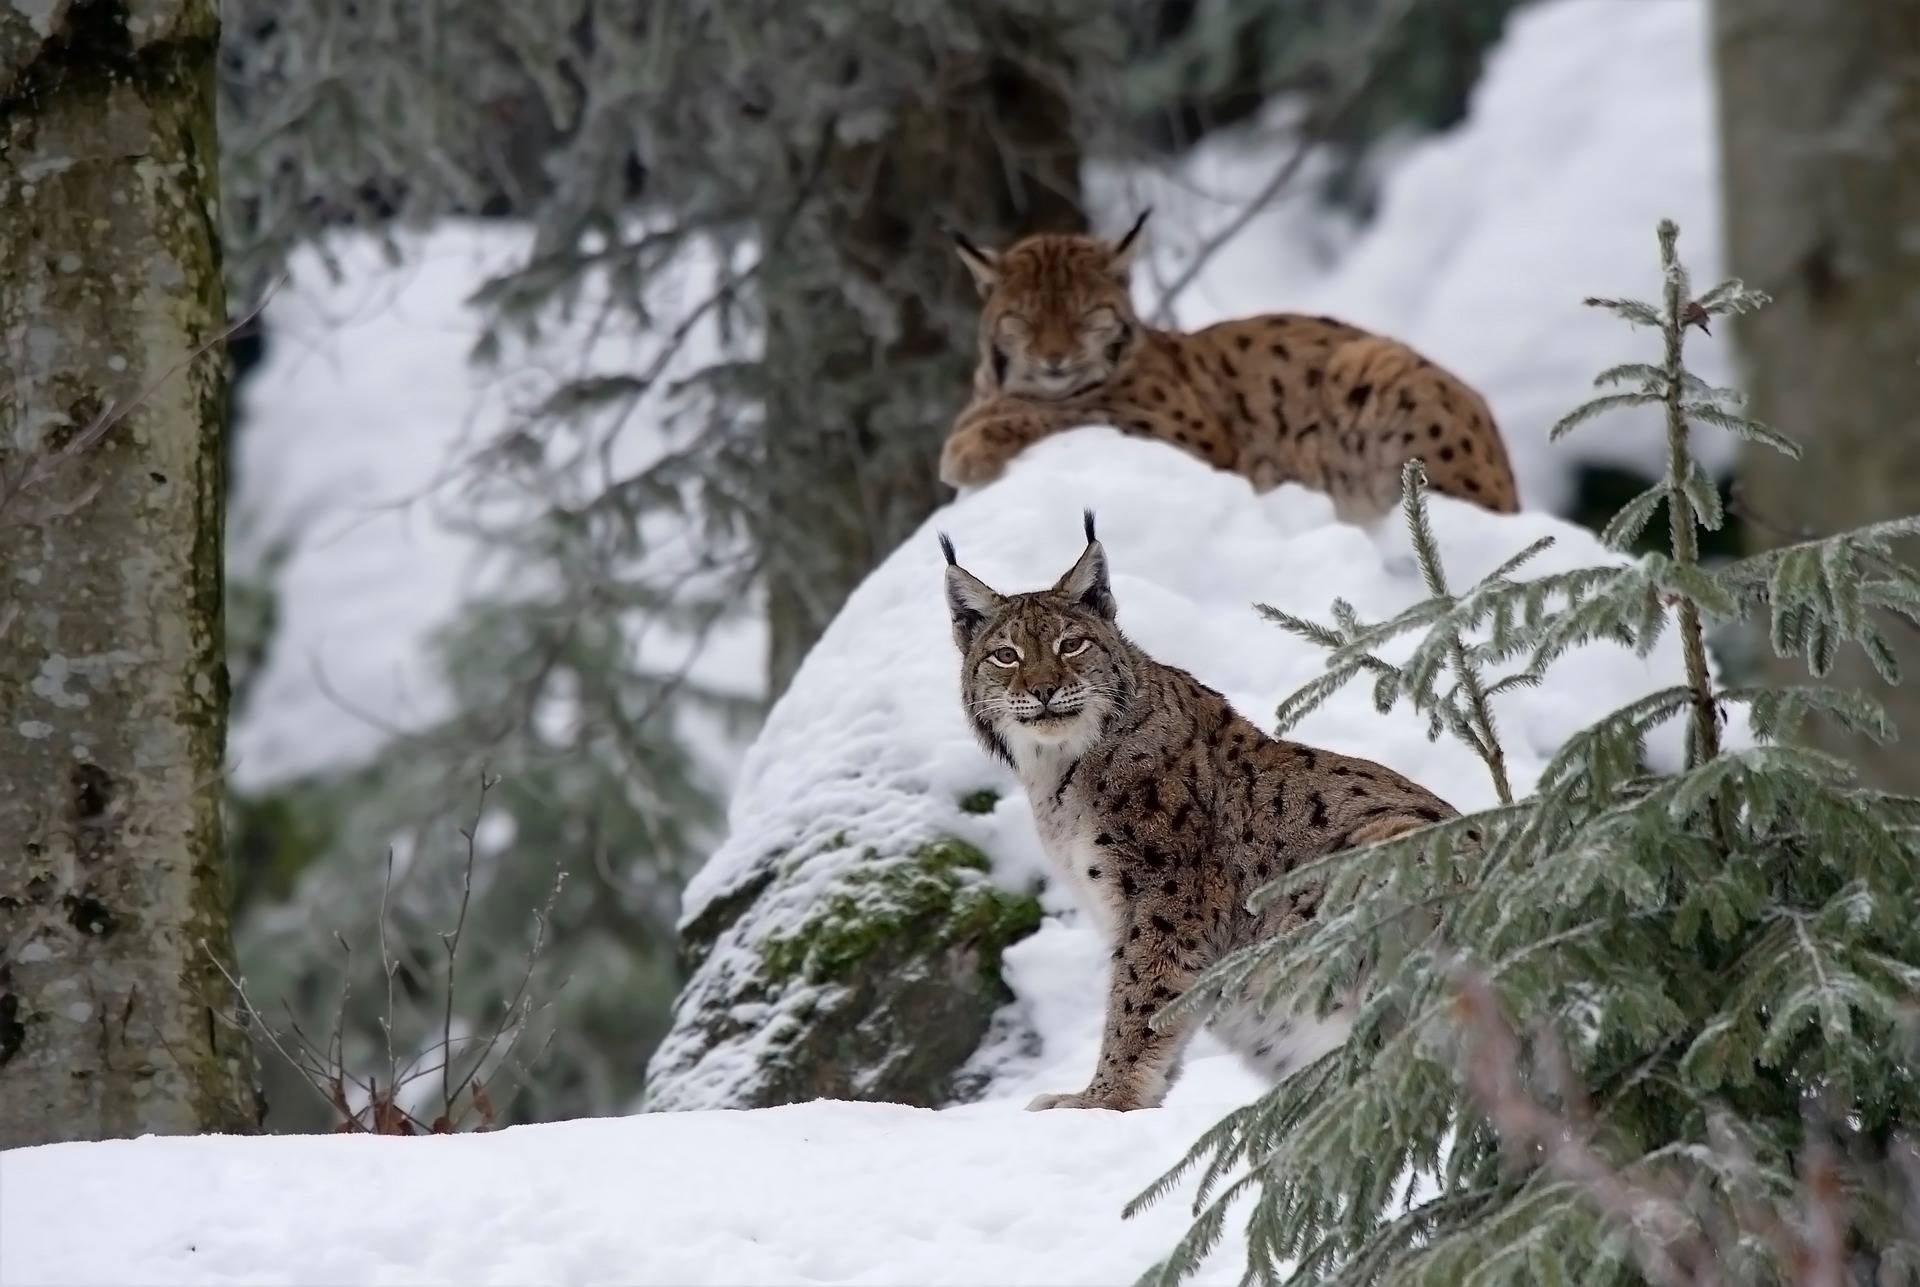 Two Eurasian lynx rest on a chilly day in the forest